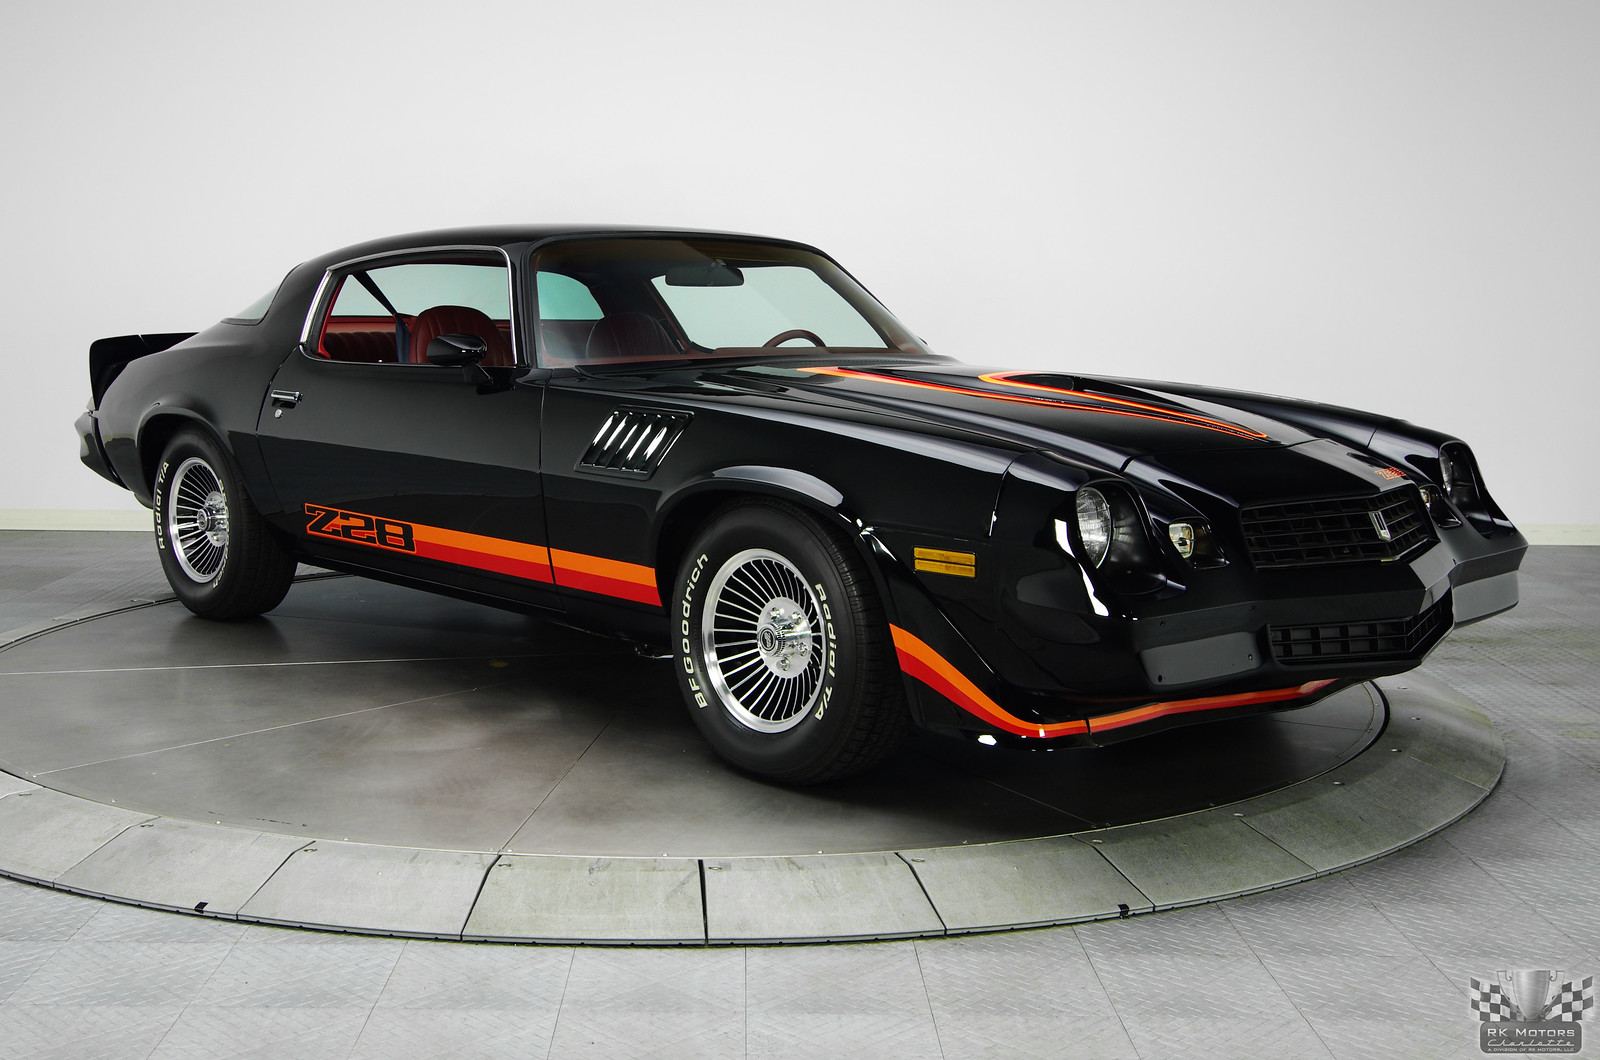 The amazo effect 1979 camaro z28 more than skin deep - Camaro z28 ...